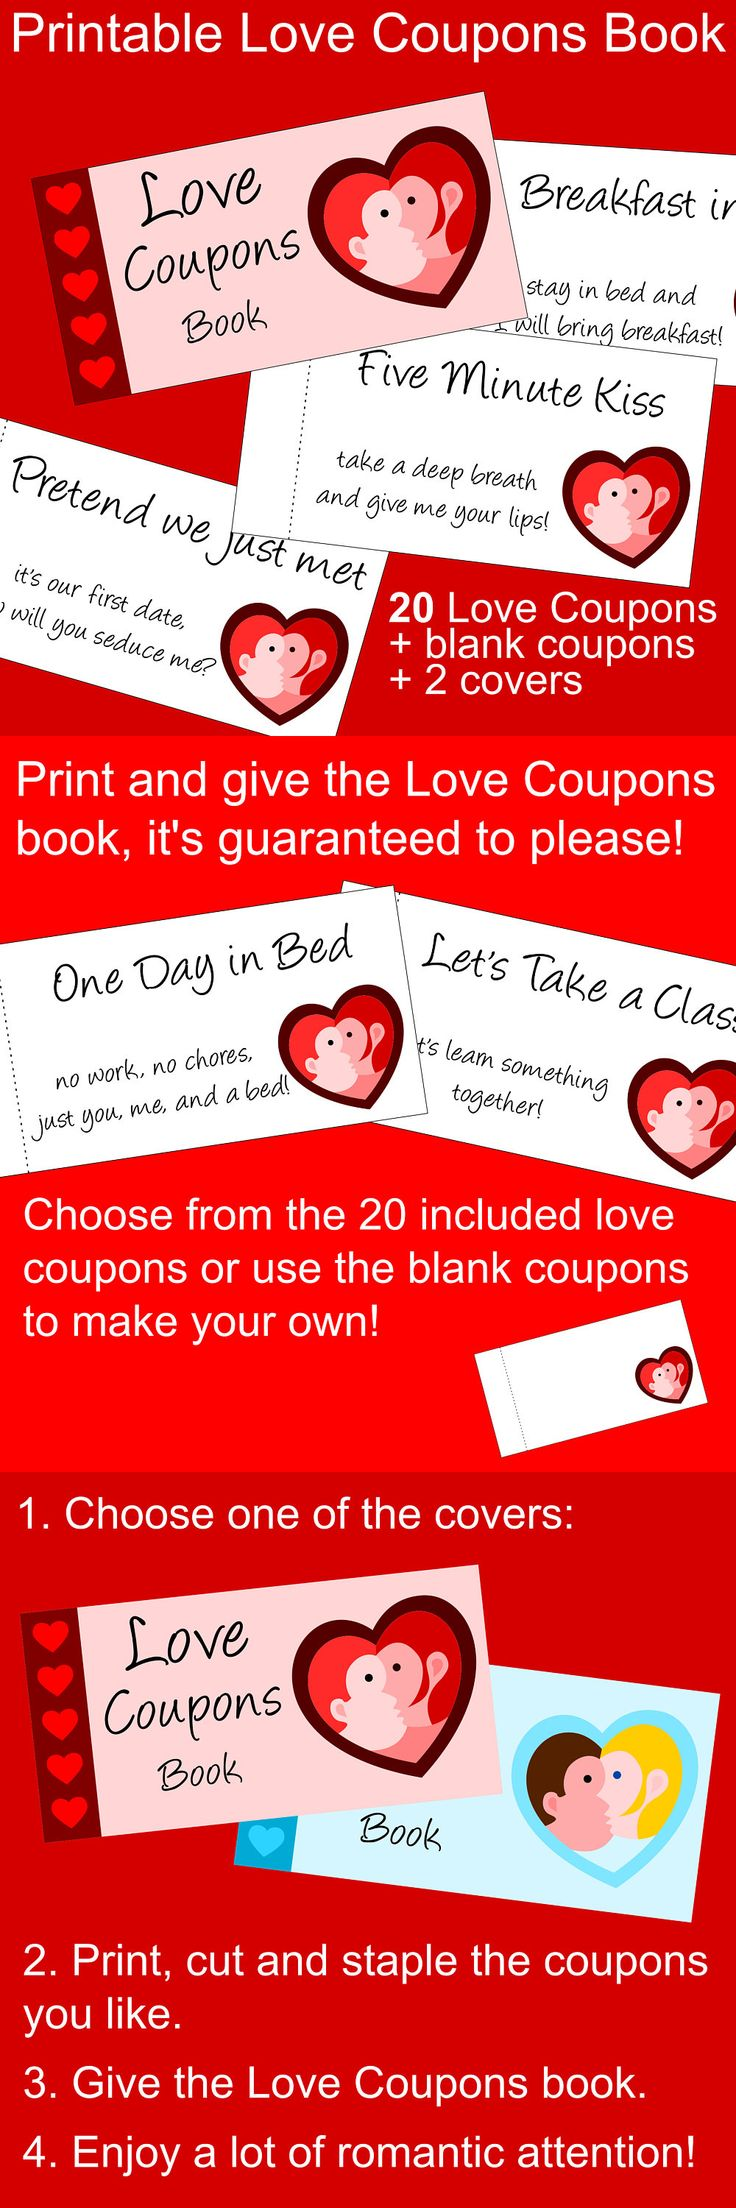 Printable Love Coupons for Valentine's Day. A perfect last minute Valentine gift idea for him and for her.